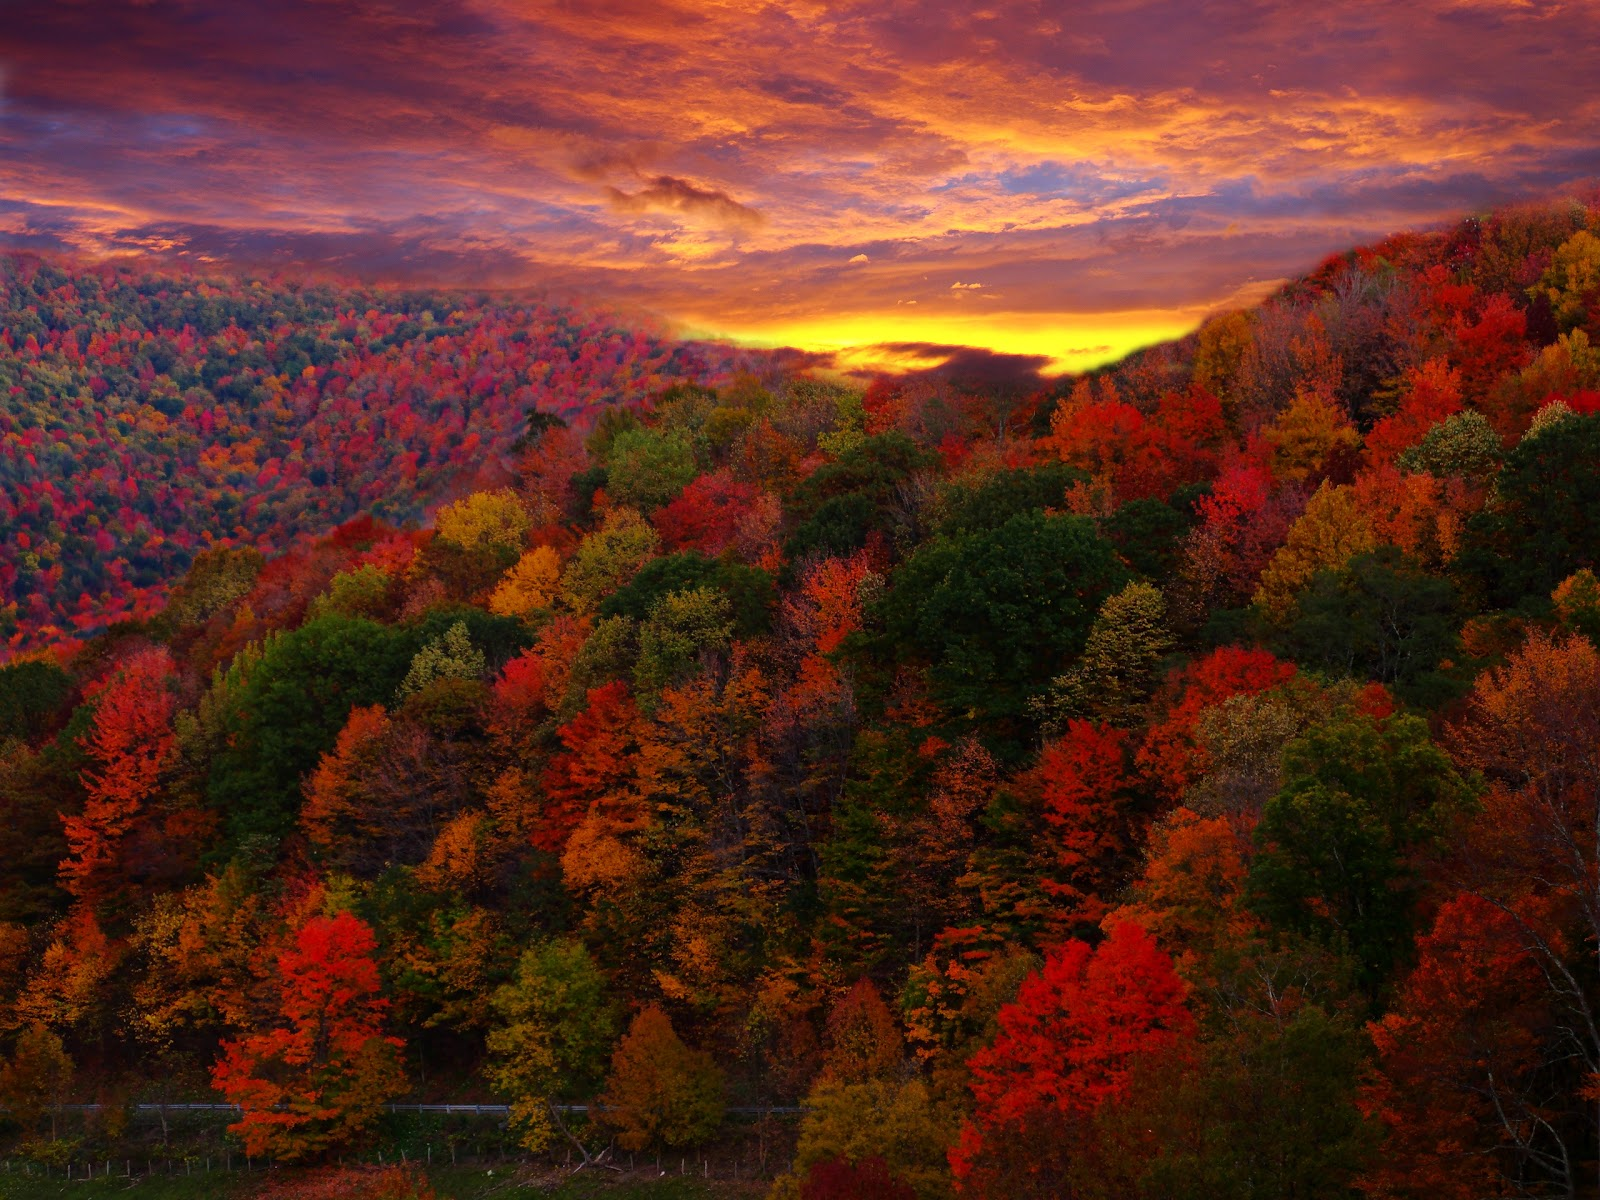 autumn mountain scenes image wallpaper free download